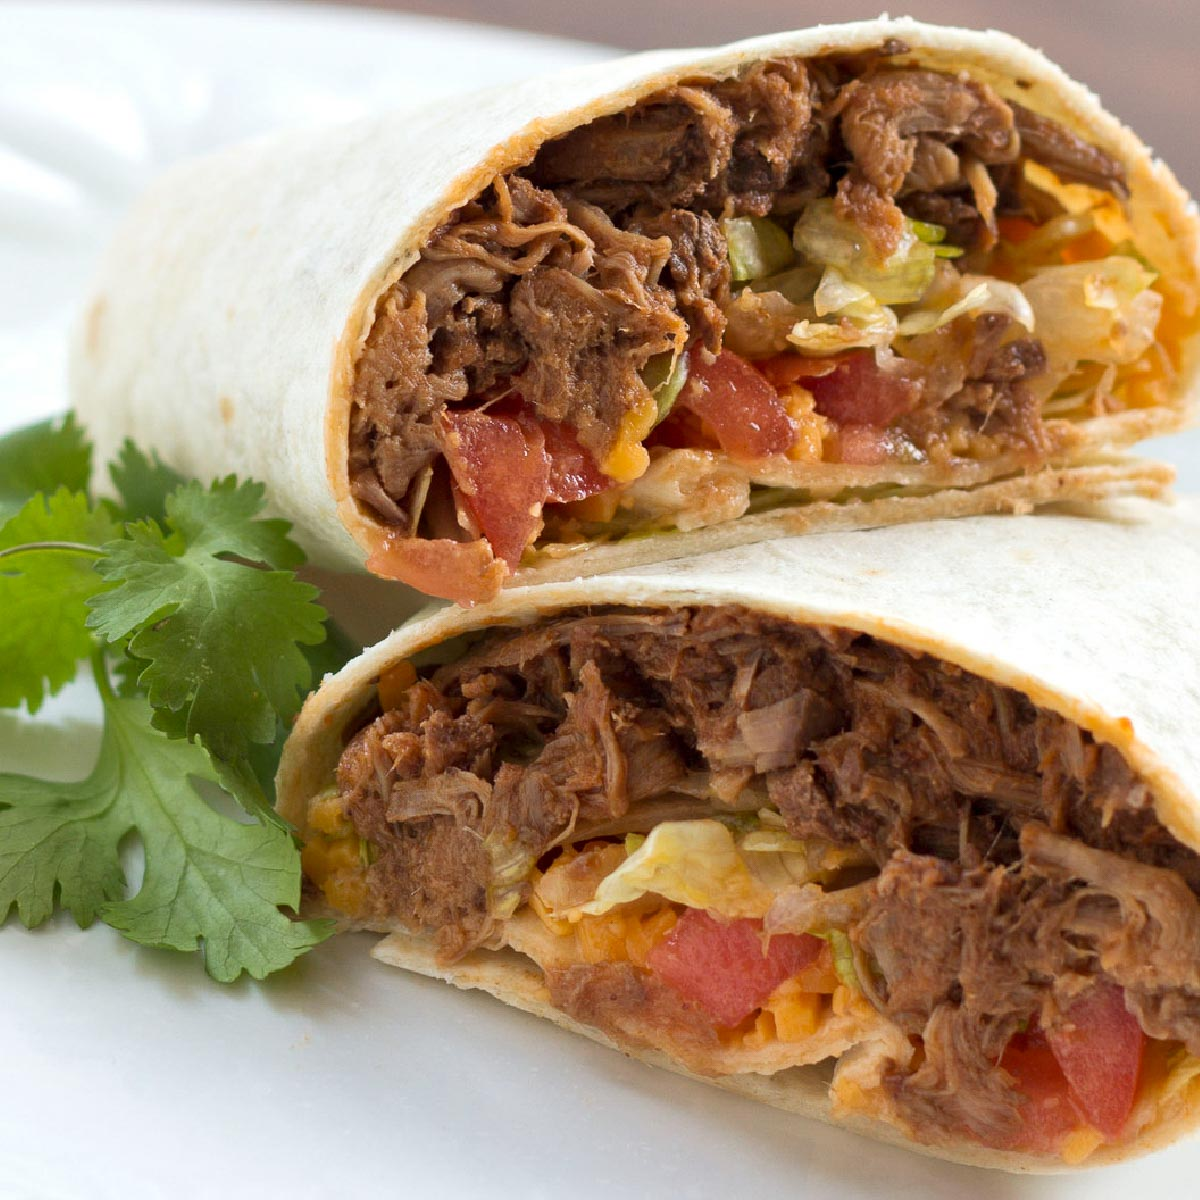 A beef burrito cut in half on a white plate